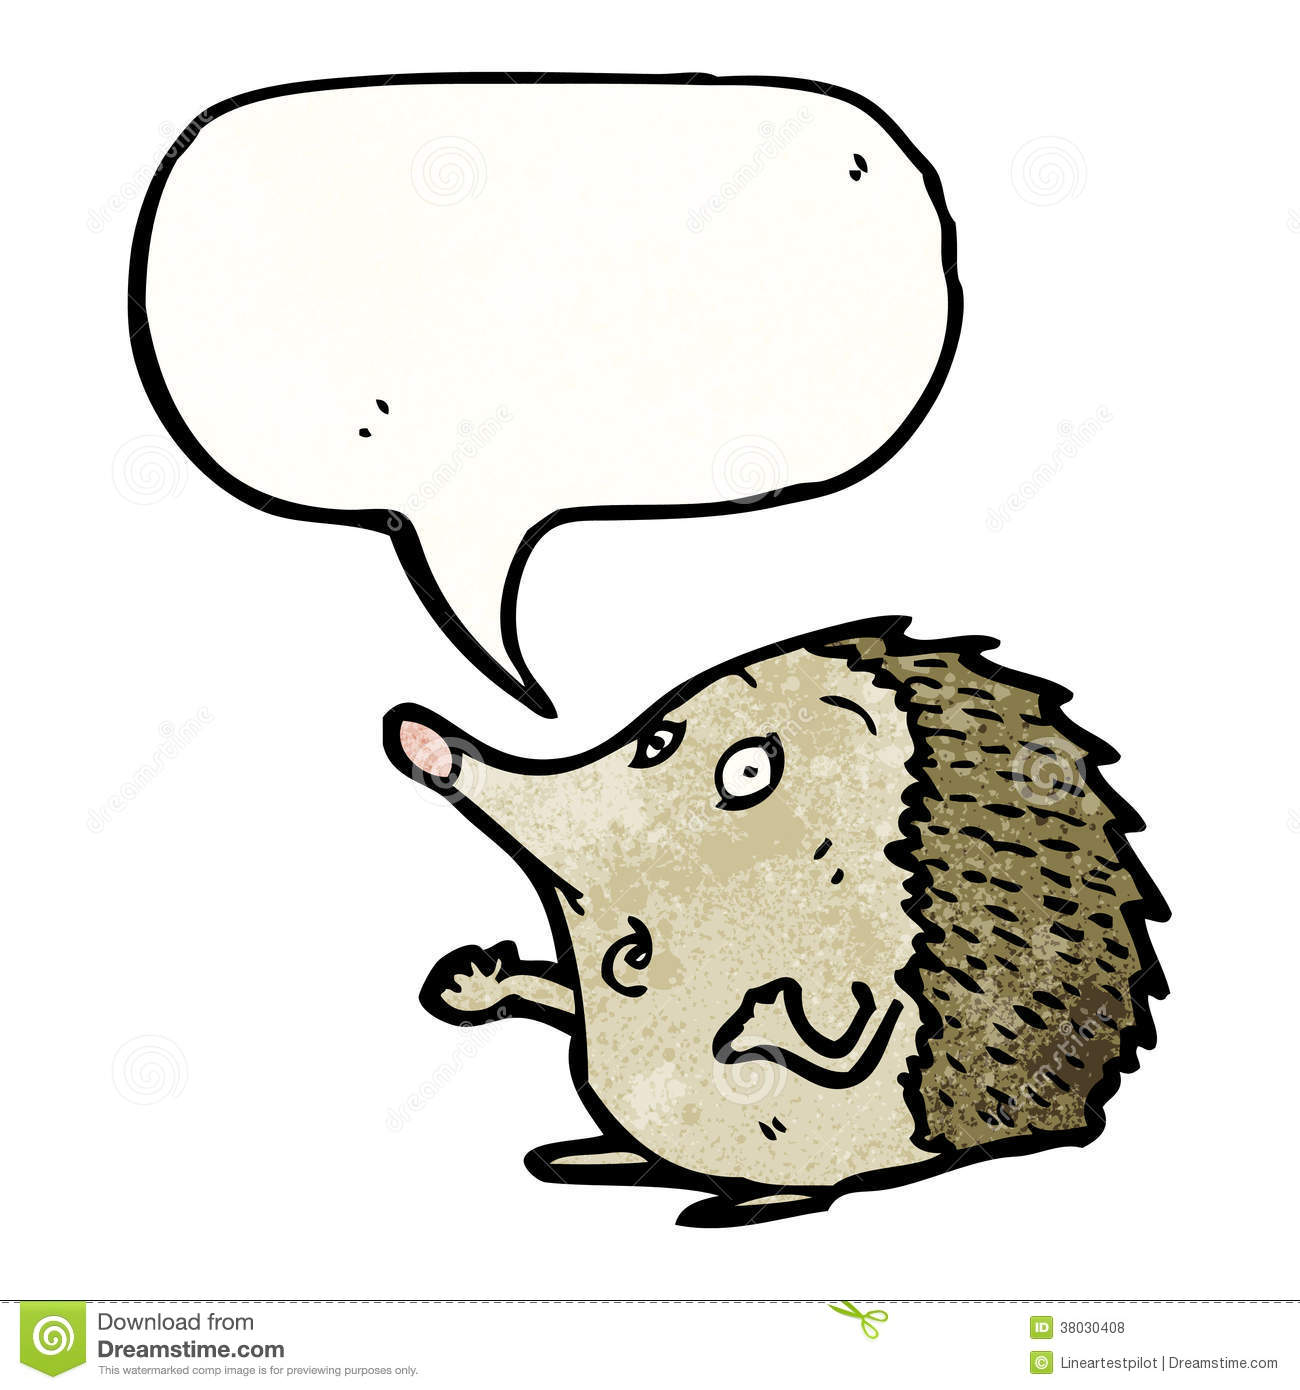 More similar stock images of ` hedgehog cartoon character with speech ...